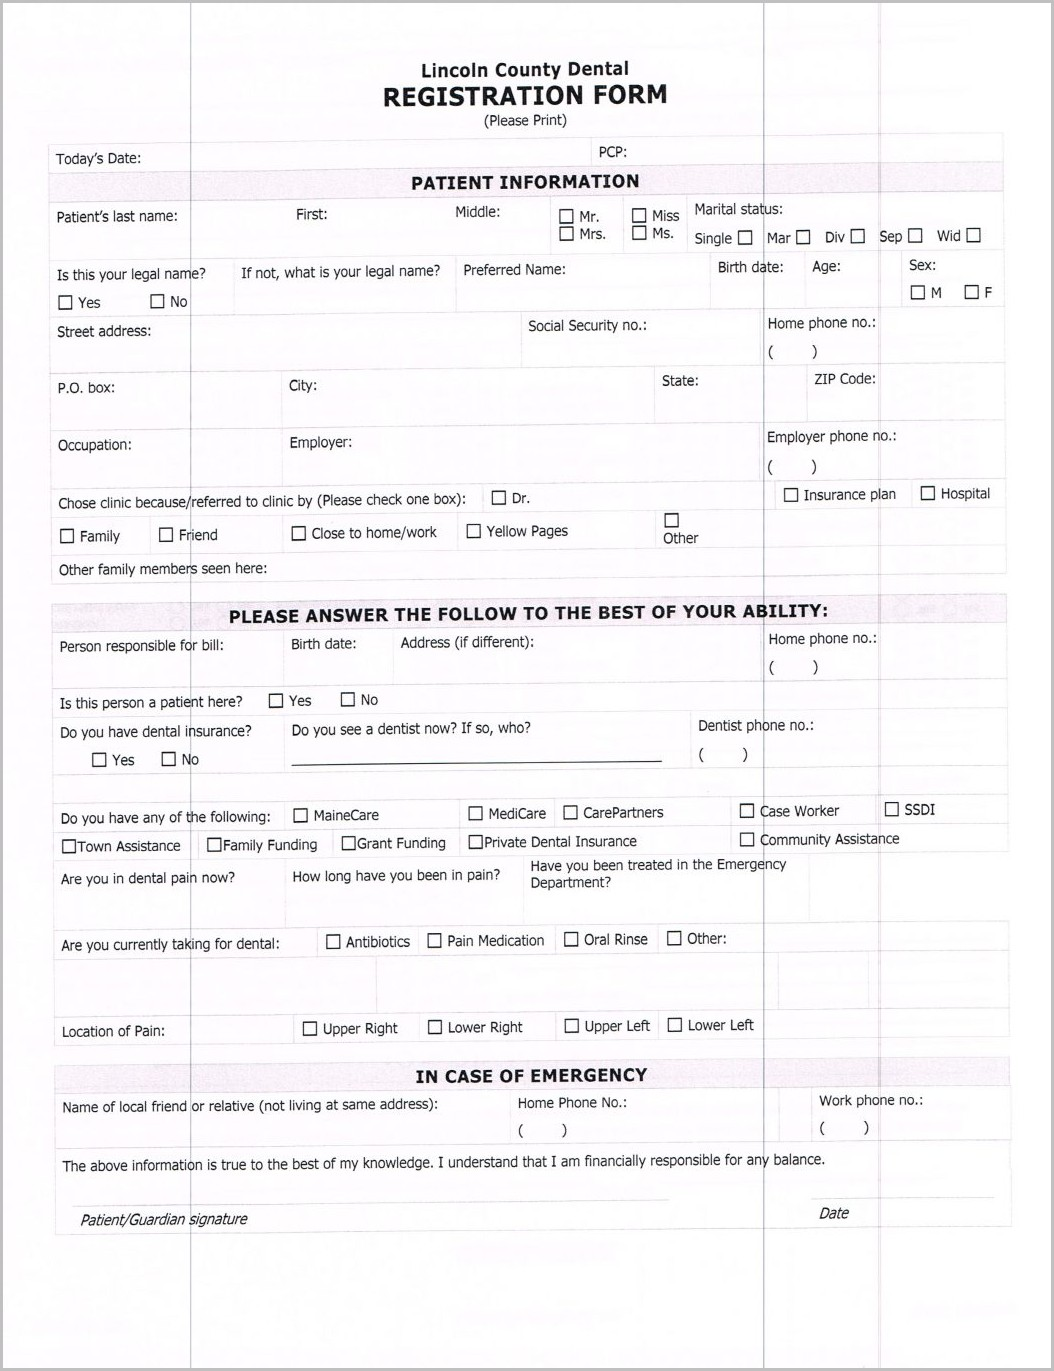 Ssi Application Form In Spanish